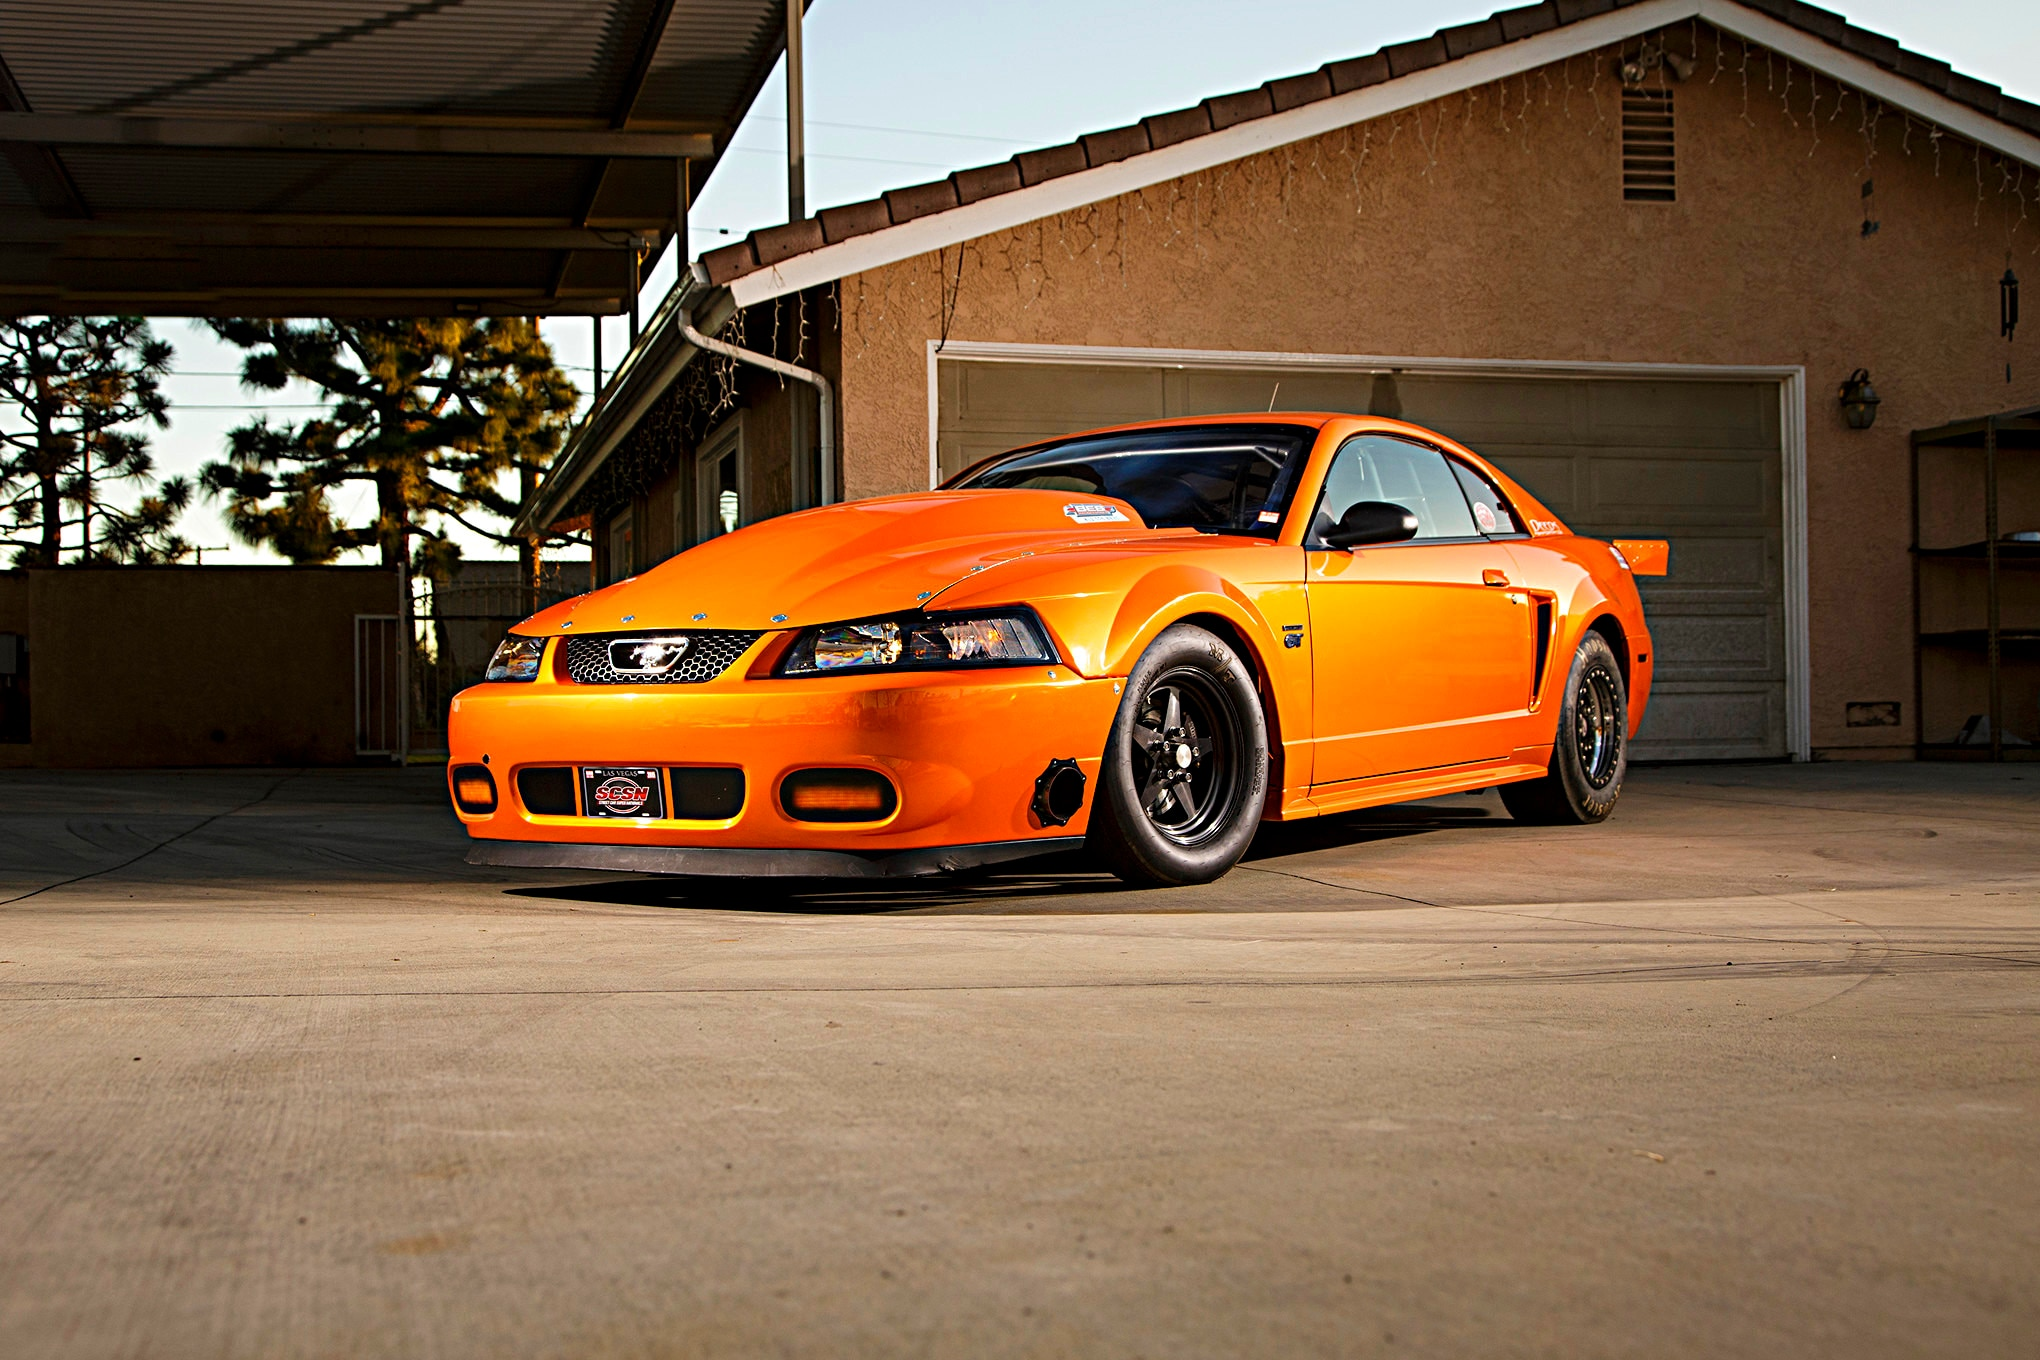 - New This 2002 127295740 Ford Edge 85 Mustang Orange Photo